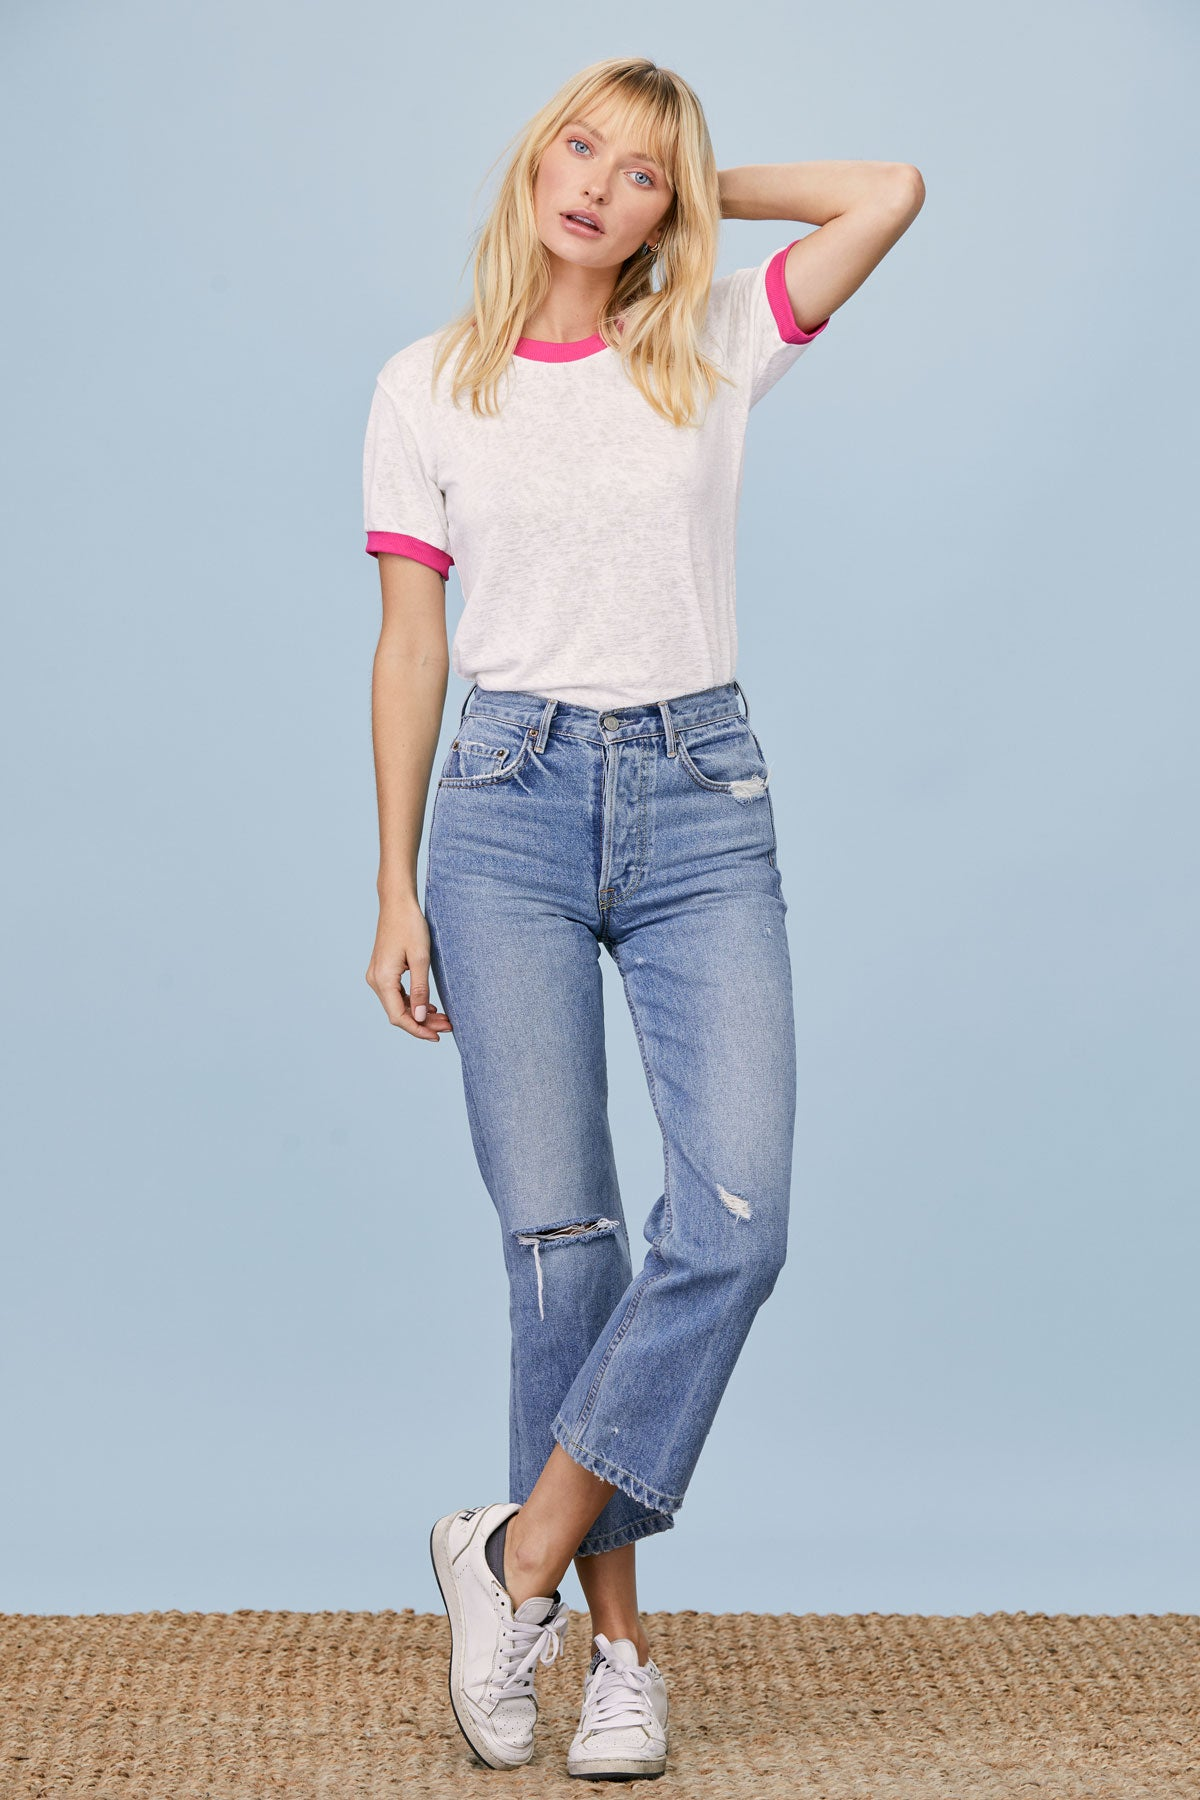 LNA Clothing – LNA Clothing Ringer Tee in White with Pink Ringer